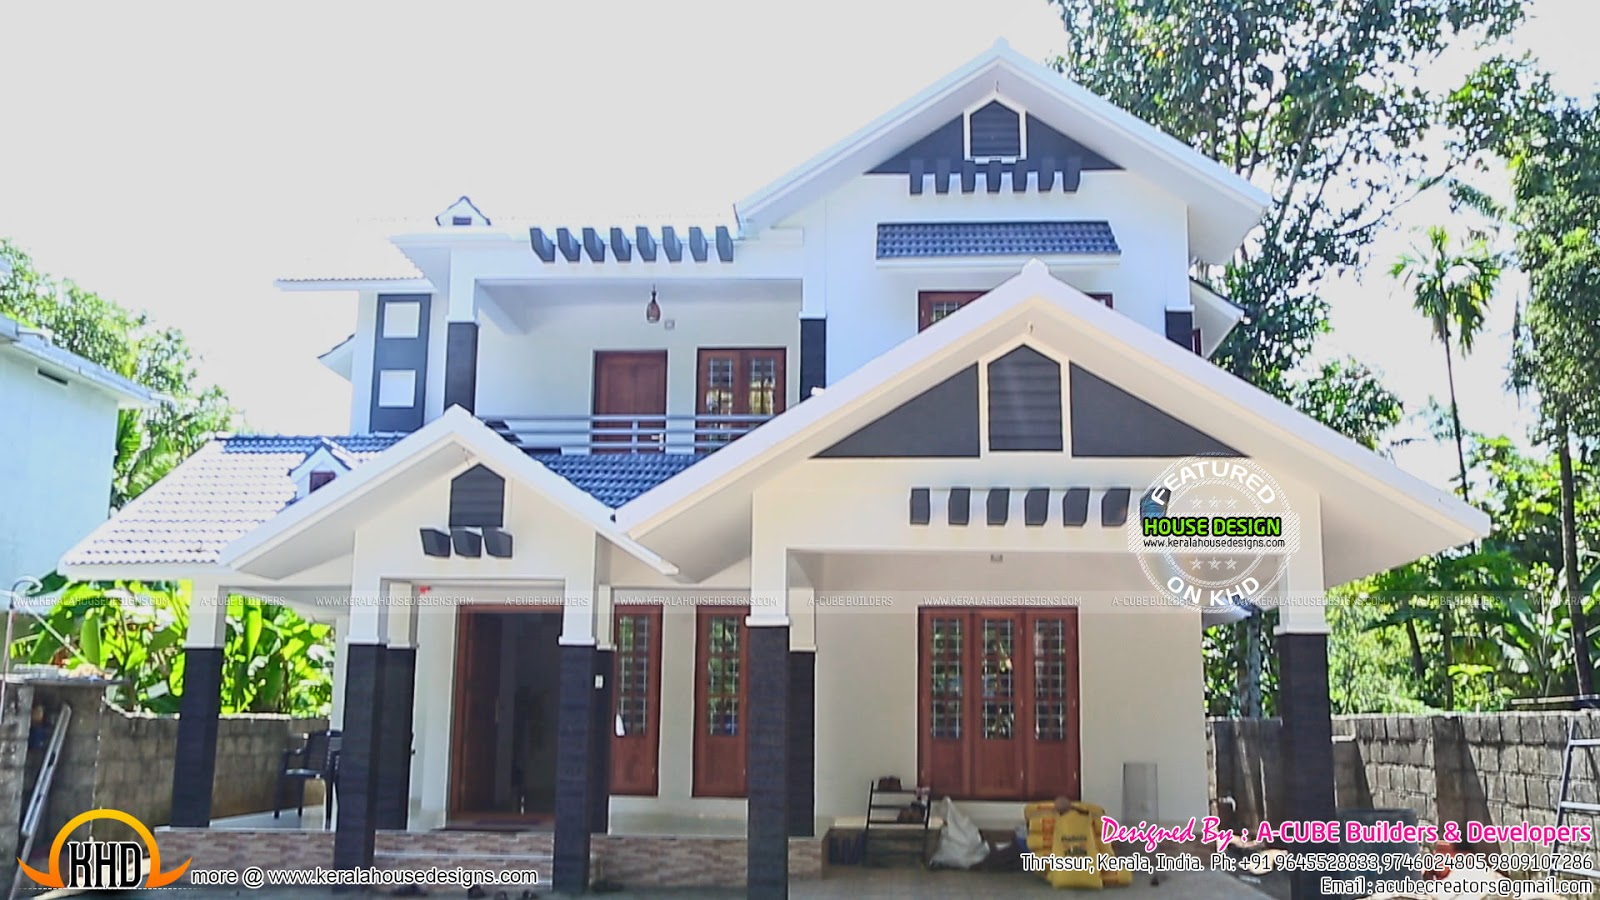 New house plans for 2016 starts here kerala home design for Kerala house plan images